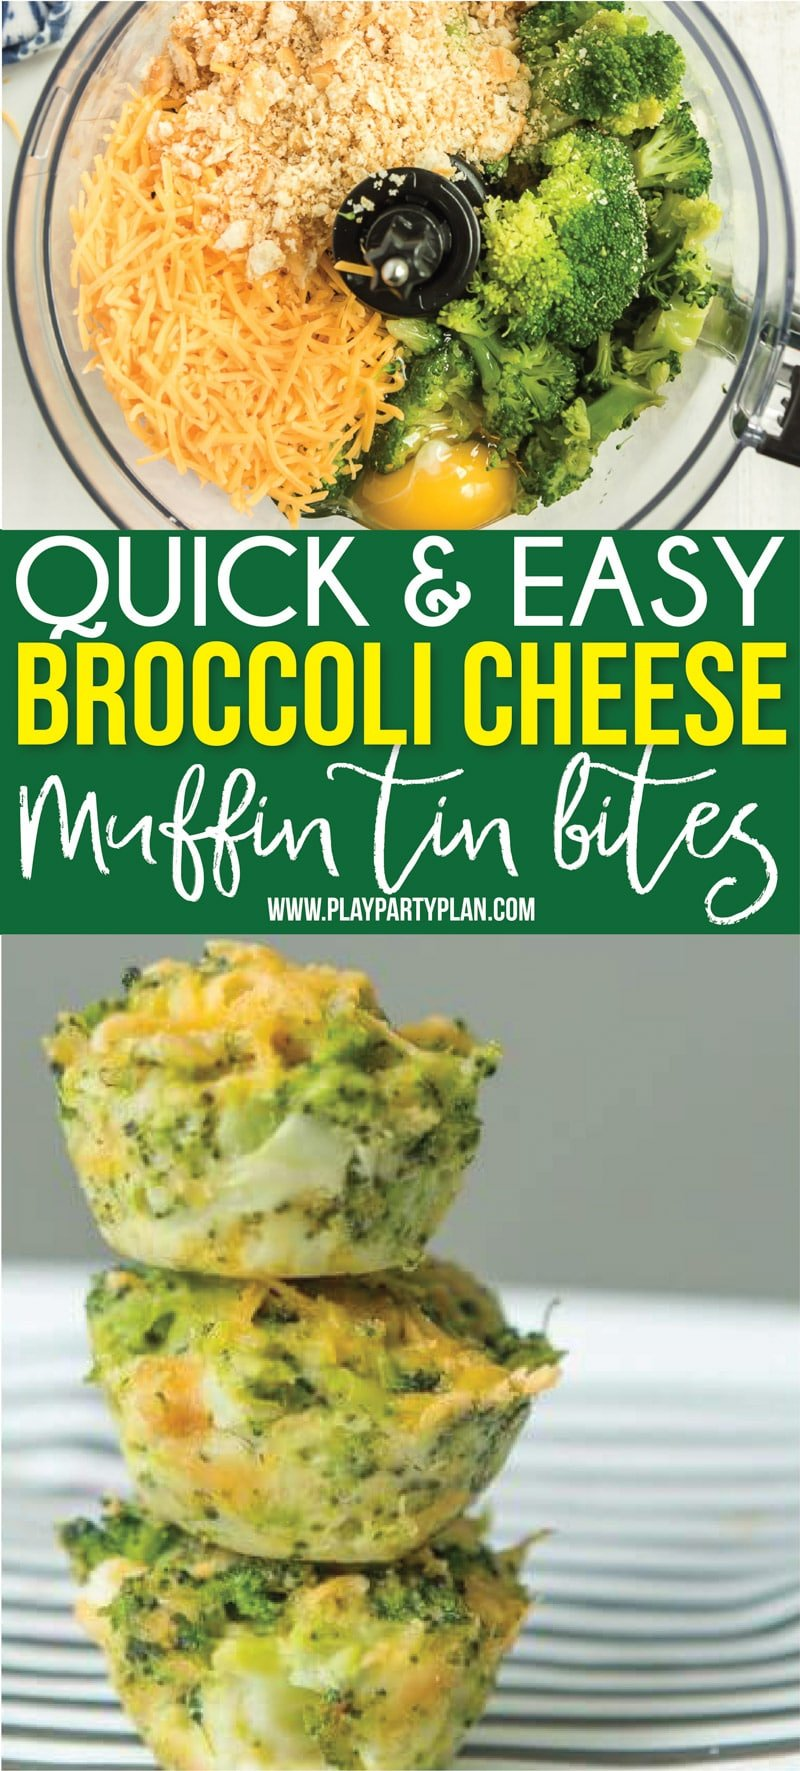 These broccoli cheese bites make the perfect side for dinner or a great healthy comfort food option! Or better yet - serve them as an appetizer at a brunch or baby shower! via @playpartyplan